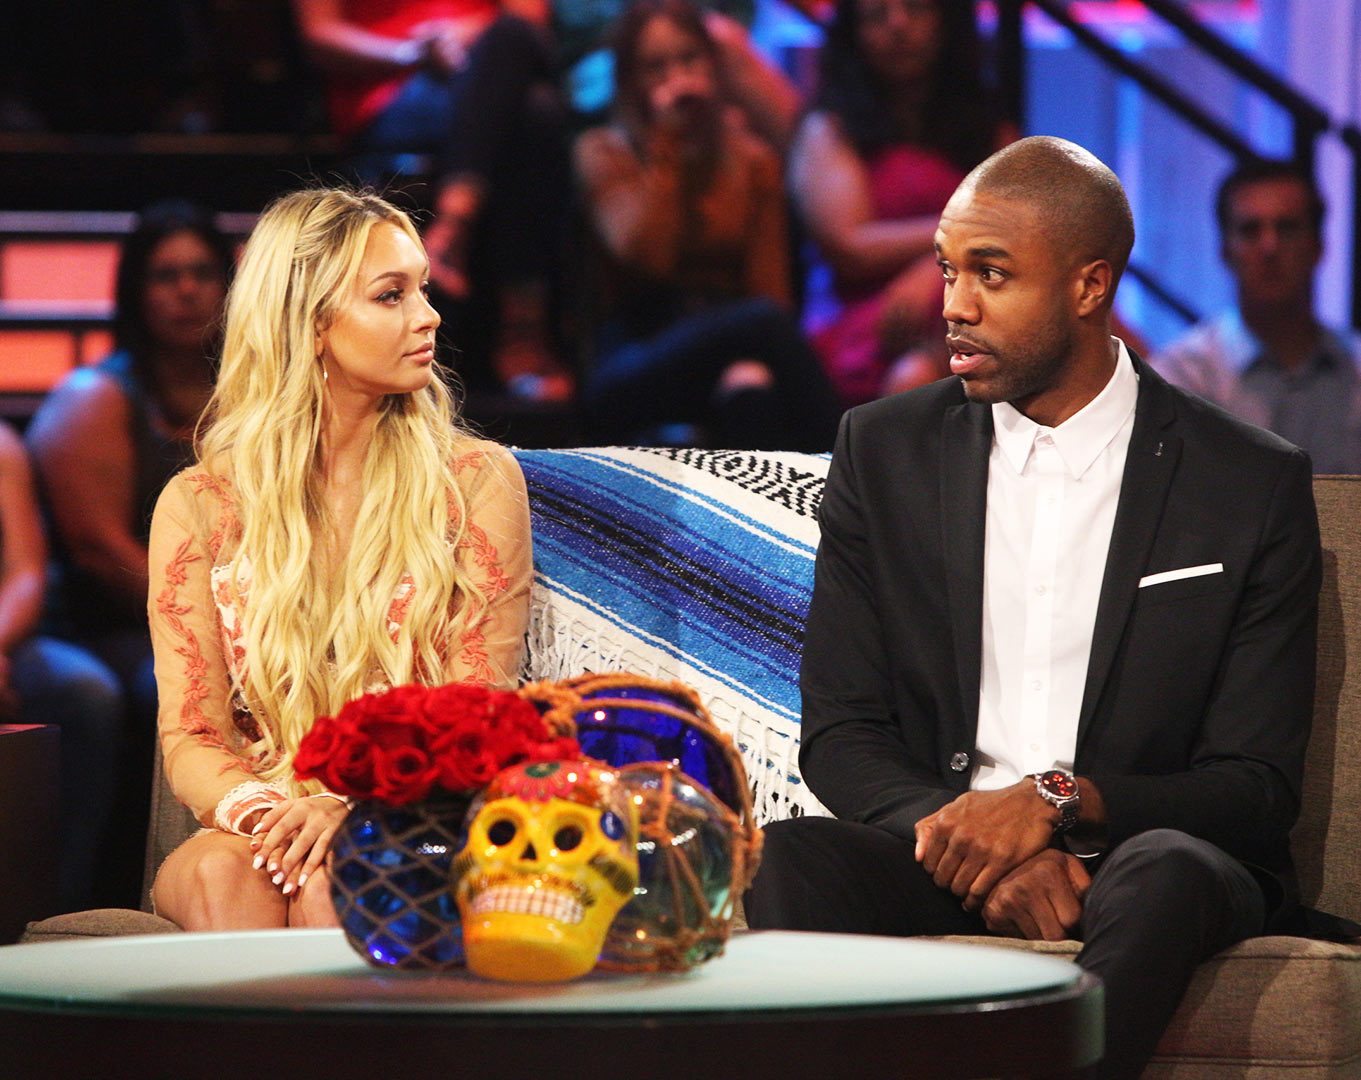 CORINNE OLYMPIOS, DEMARIO JACKSON - Bachelor in Paradise season 3 production shut down in June 2017 days after the cast arrived. A producer filed a sexual misconduct complaint involving Corinne Olympios and DeMario Jackson, and Warner Bros. halted filming in order to investigate.